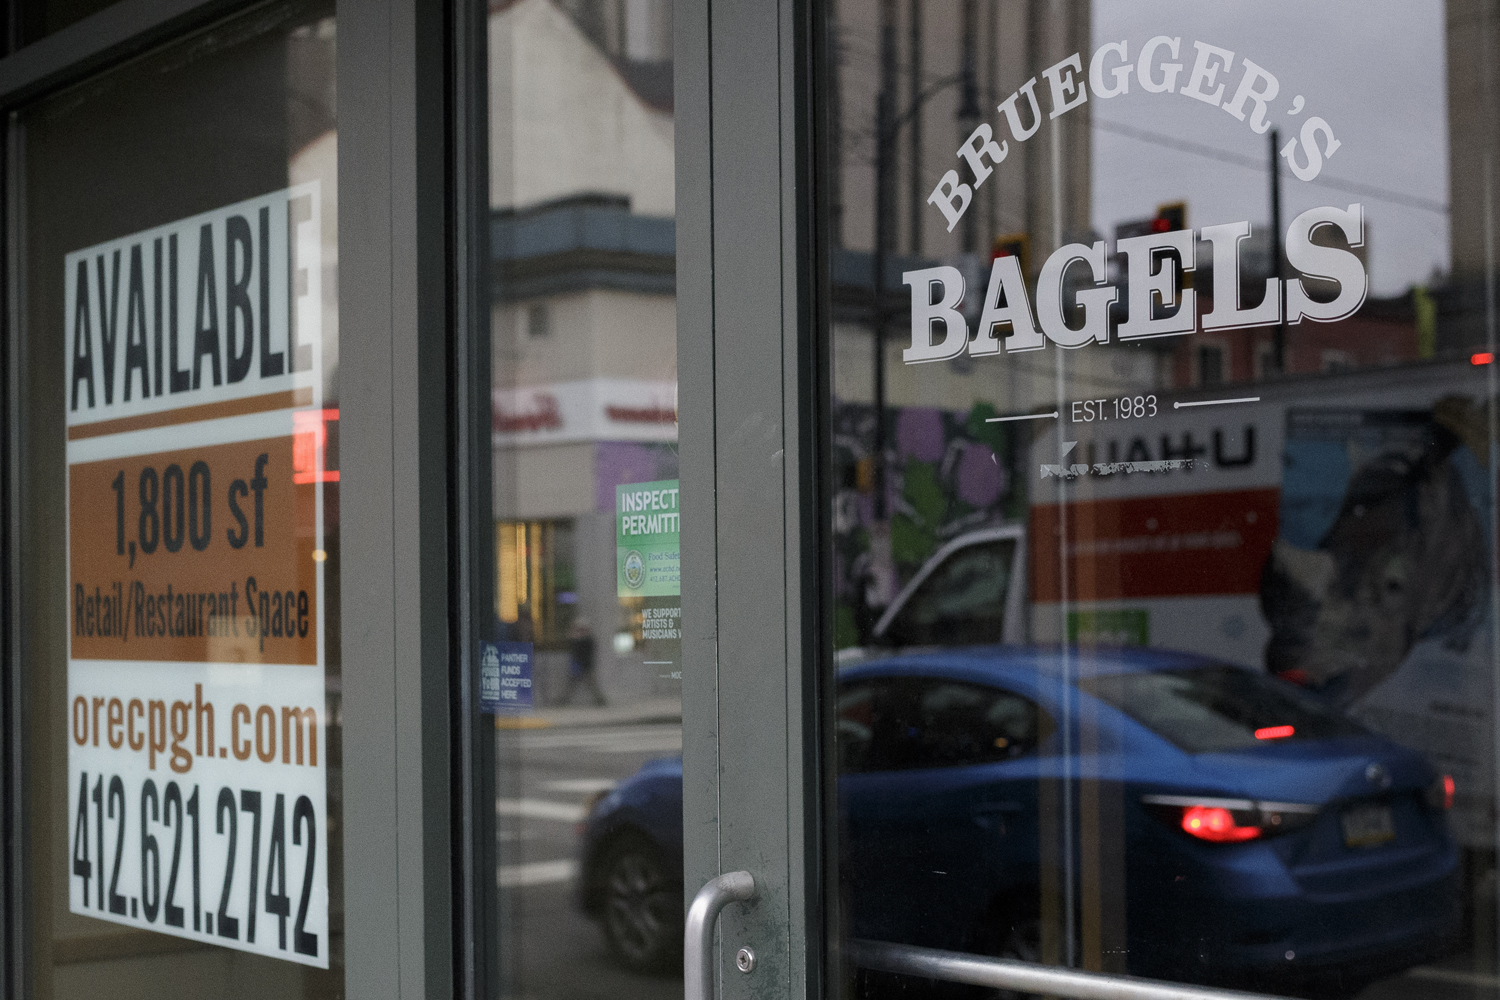 The Bruegger's Bagels located on 3714 Forbes Ave. closed in mid-December.